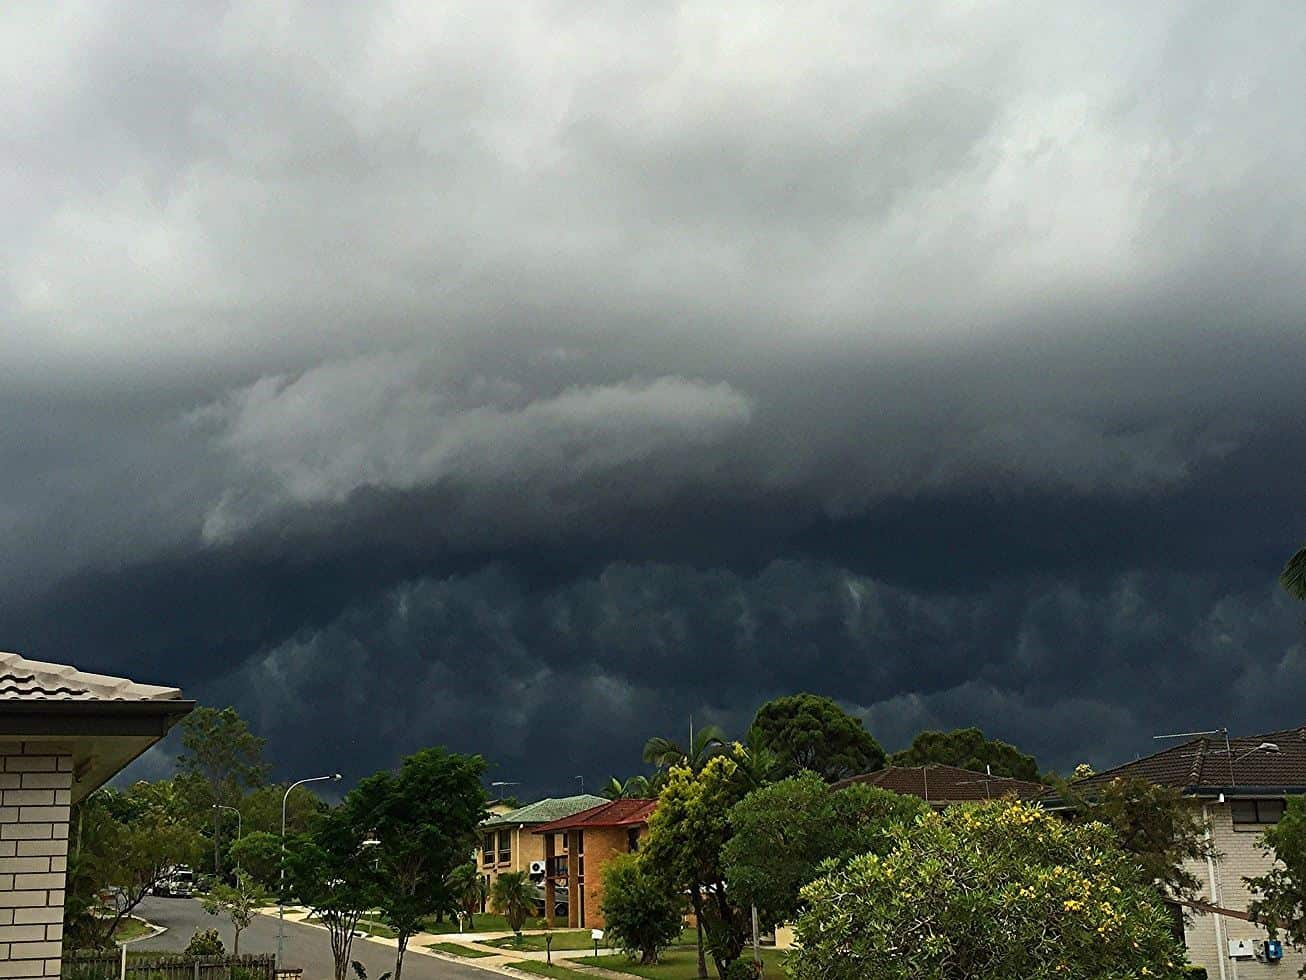 Ominous angry clouds with a severe thunderstorm - Brisbane, Australia (Dec 27th 2015)